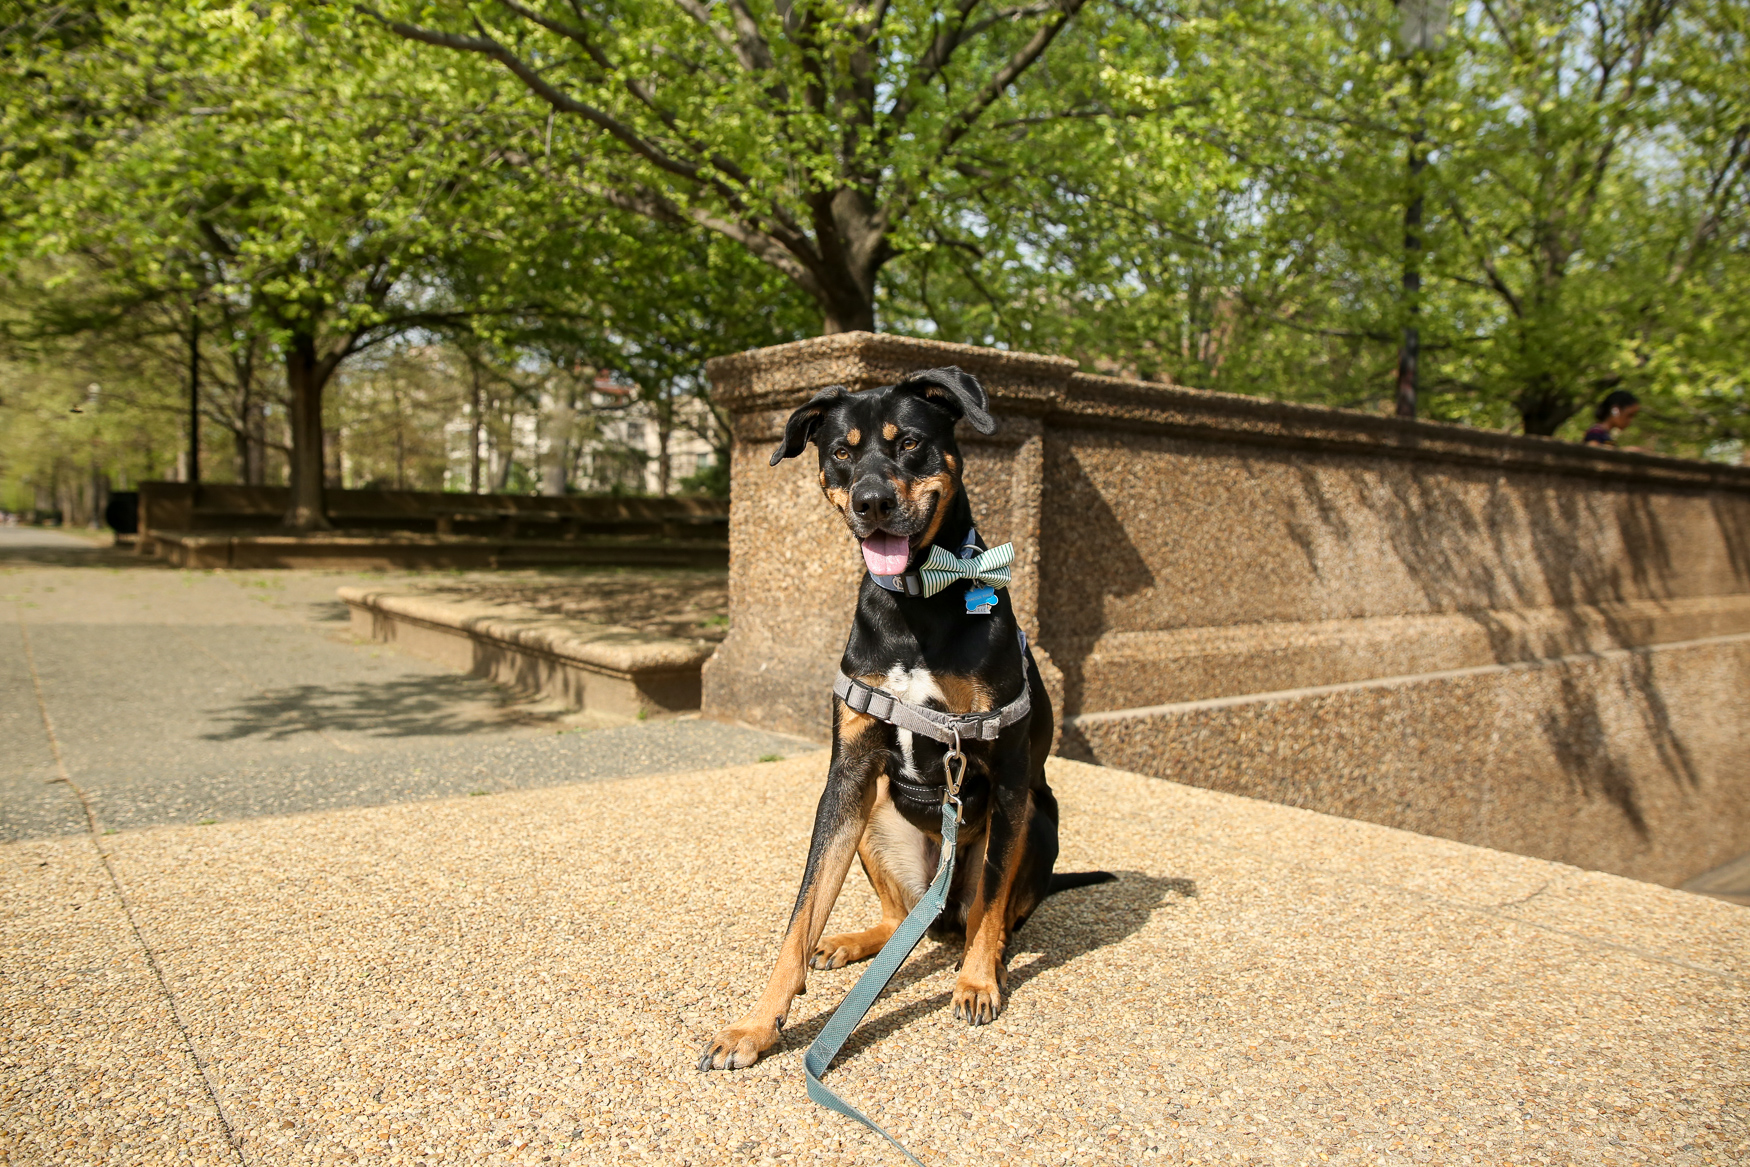 Meet Marcus Paige, a 2.5-year-old Greek Harehound who was actually born in Greece! Marcus Paige's mom so badly wanted a dog that when she started looking at condos she would only consider dog-friendly options, and when she finally closed on a condo in January 2017, her realtor gifted her with a dog bowl engraved with the name of her future pup, Marcus Paige (named for a former University of North Carolina basketball player), even though she didn't have the dog yet! Mom and pup finally found one another in the spring of 2017 thanks to the rescue group Homeward Trails and an Arlington couple who runs a Bicycle tour business leading bike tours all over the world, who rescued him from his life as a stray in Greece and brought him back to the states. His mom met and adopted him just a few days later. She has stayed in touch with the couple who saved him, and will now be paying it forward and serving as a dog flight escort on the way home from her vacation to Colombia. Marcus Paige is very attached to one specific ball -- a red and blue version of a Kong toy -- and has no interest in any other balls. He loves other dogs, and will sit down on the sidewalk when he sees one approaching and wait to greet it. He loves walks and rolling in the grass, but he is not a fan of sirens or rain If you're interested in having your pup featured, drop us a line at aandrade@dcrefined.com, but we do have quite the waiting list right now so we appreciate your patience! (Image: Amanda Andrade-Rhoades/DC Refined)